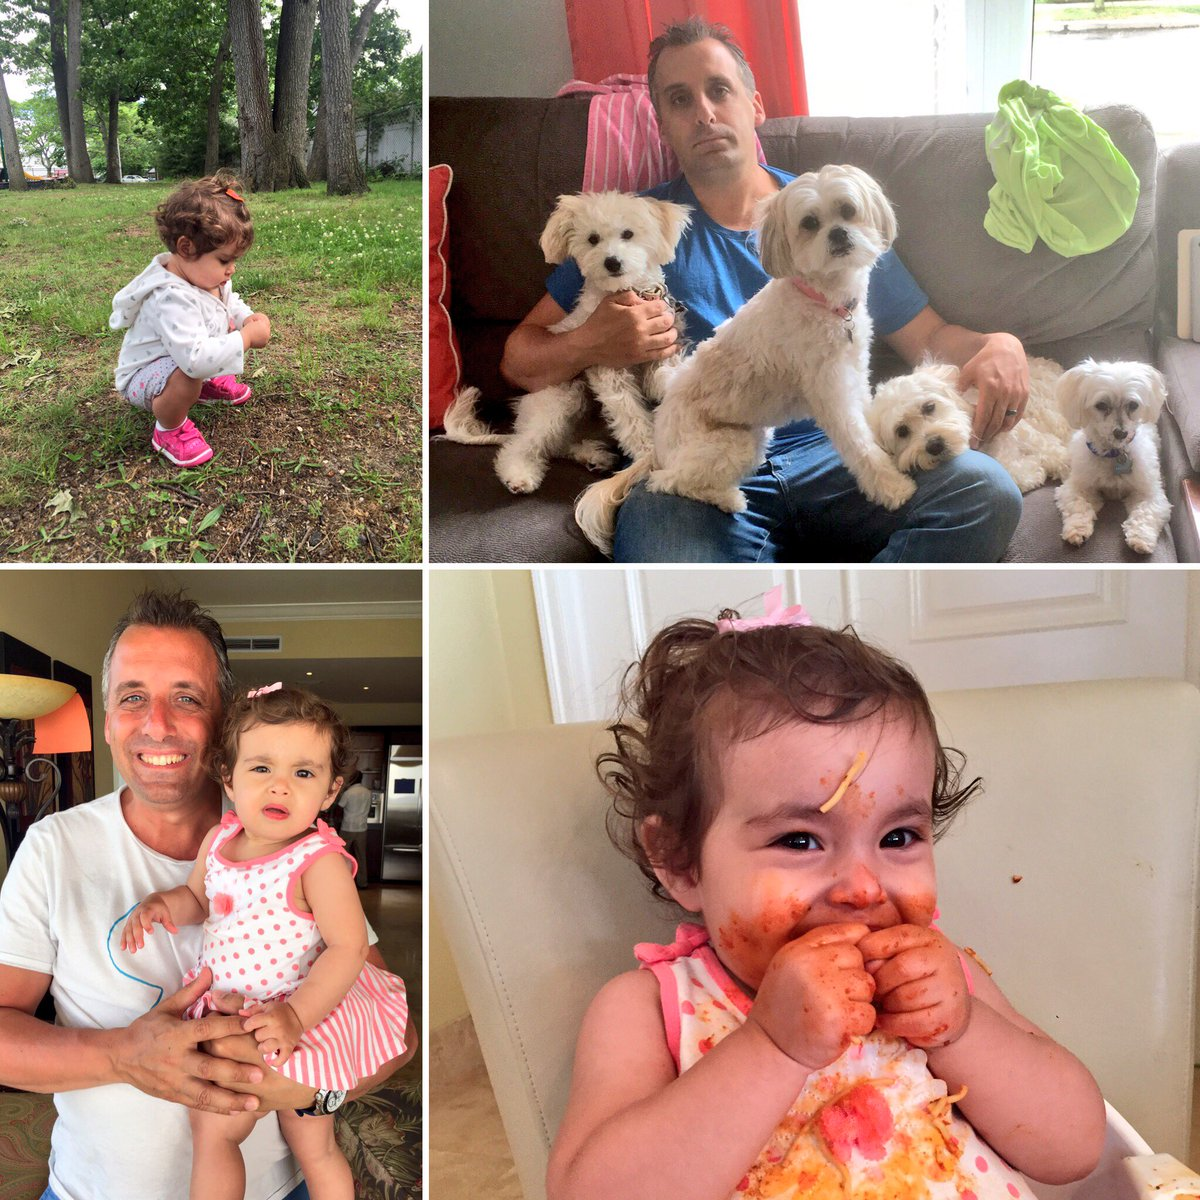 Joe gatto on twitter quot celebrating today w all my babies love being